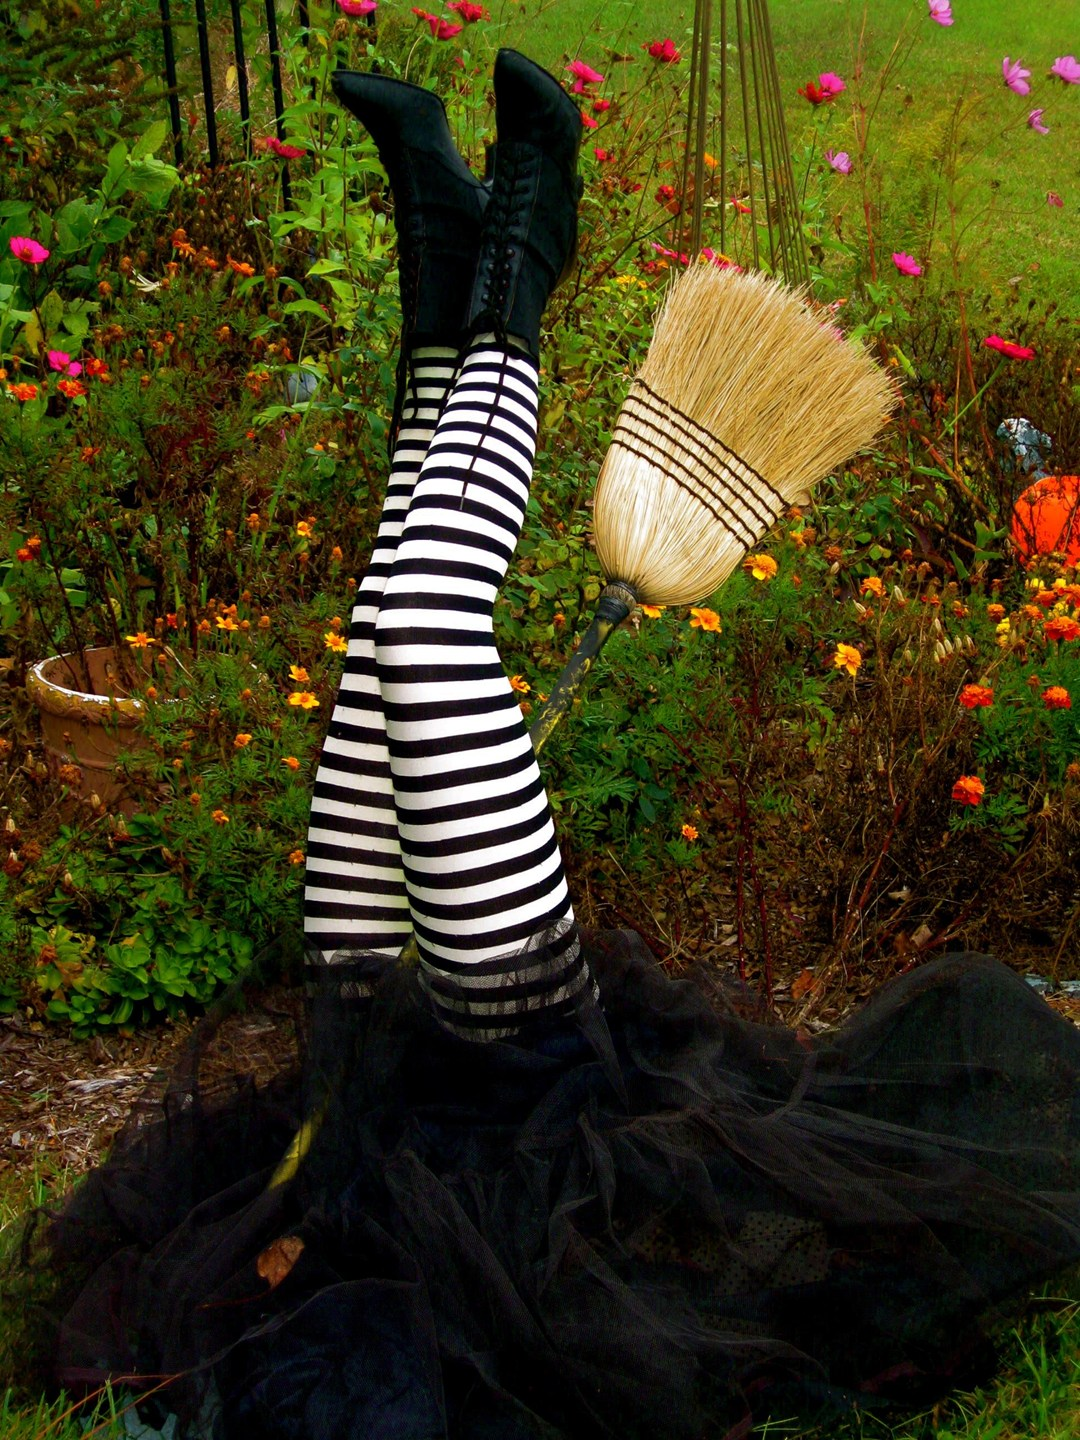 """Daily Press - Witch Involved in Fatal Broom Accident. """"Spirits"""" May Have Been Contributing Factor"""